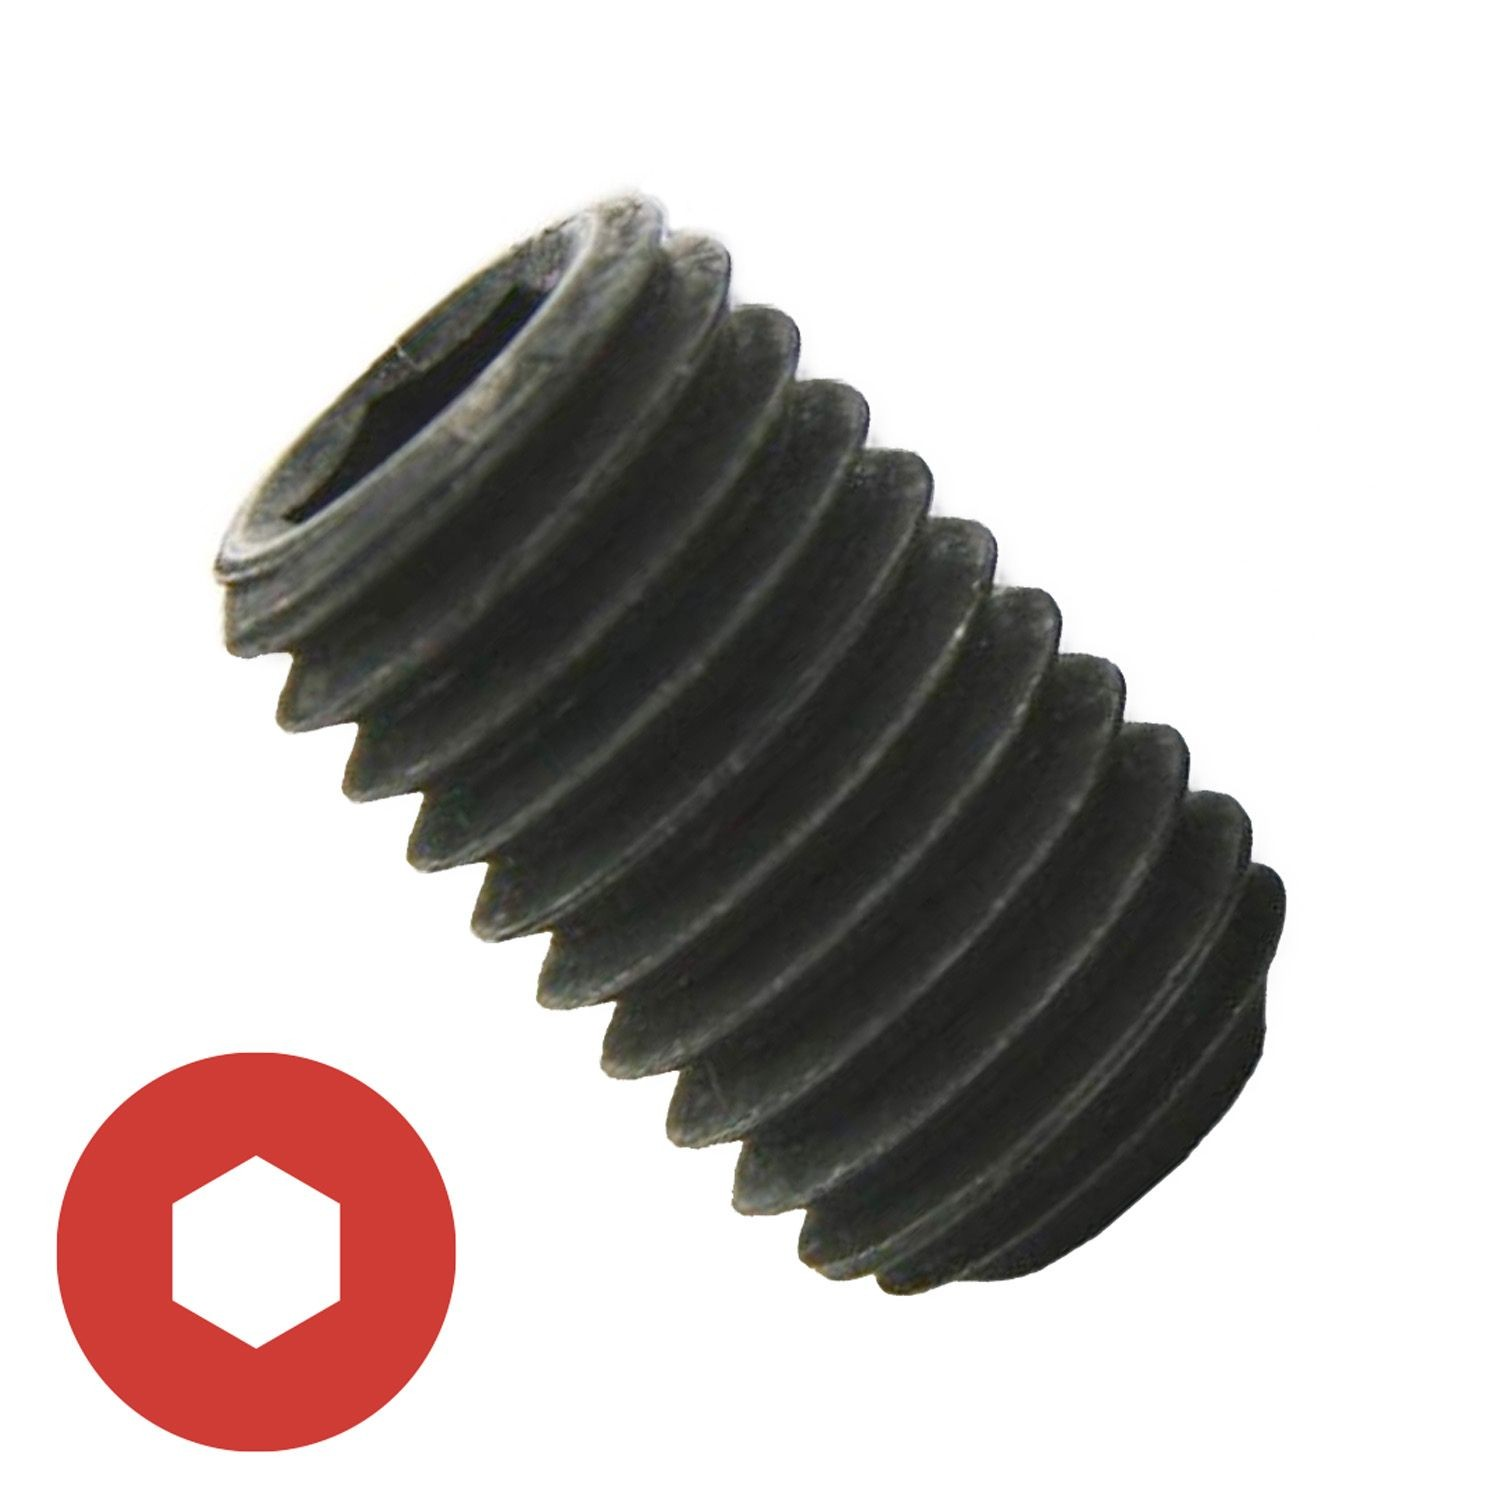 "#10-32 x 7/16"" Cup Point Socket Set Screw"